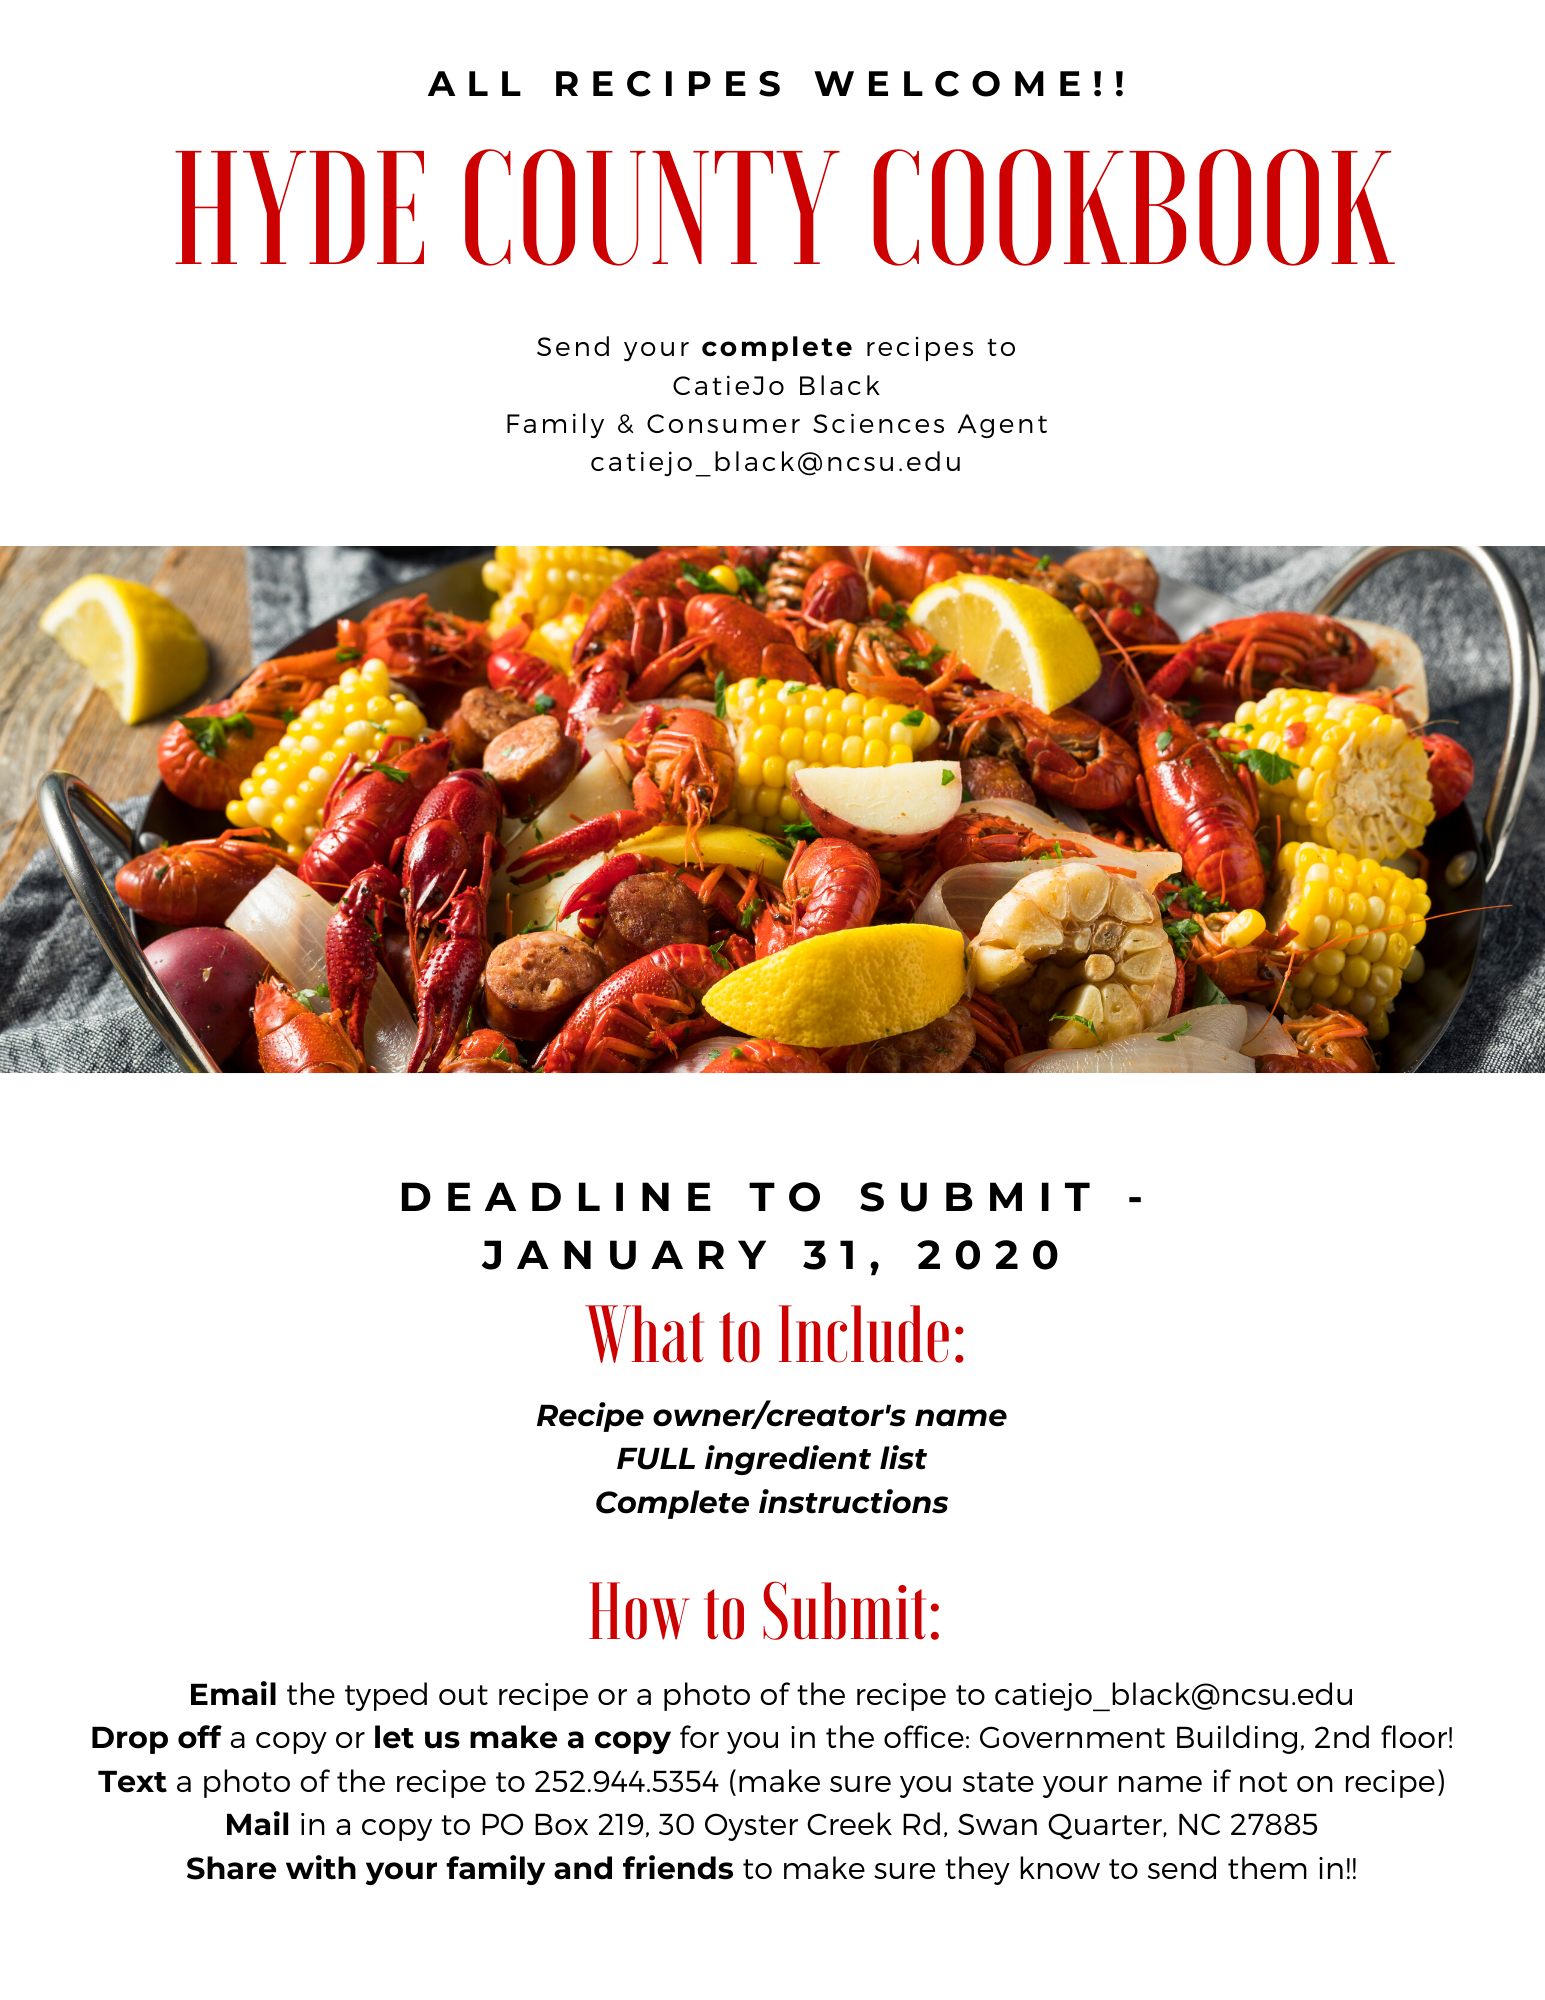 Hyde County Cookbook flyer image